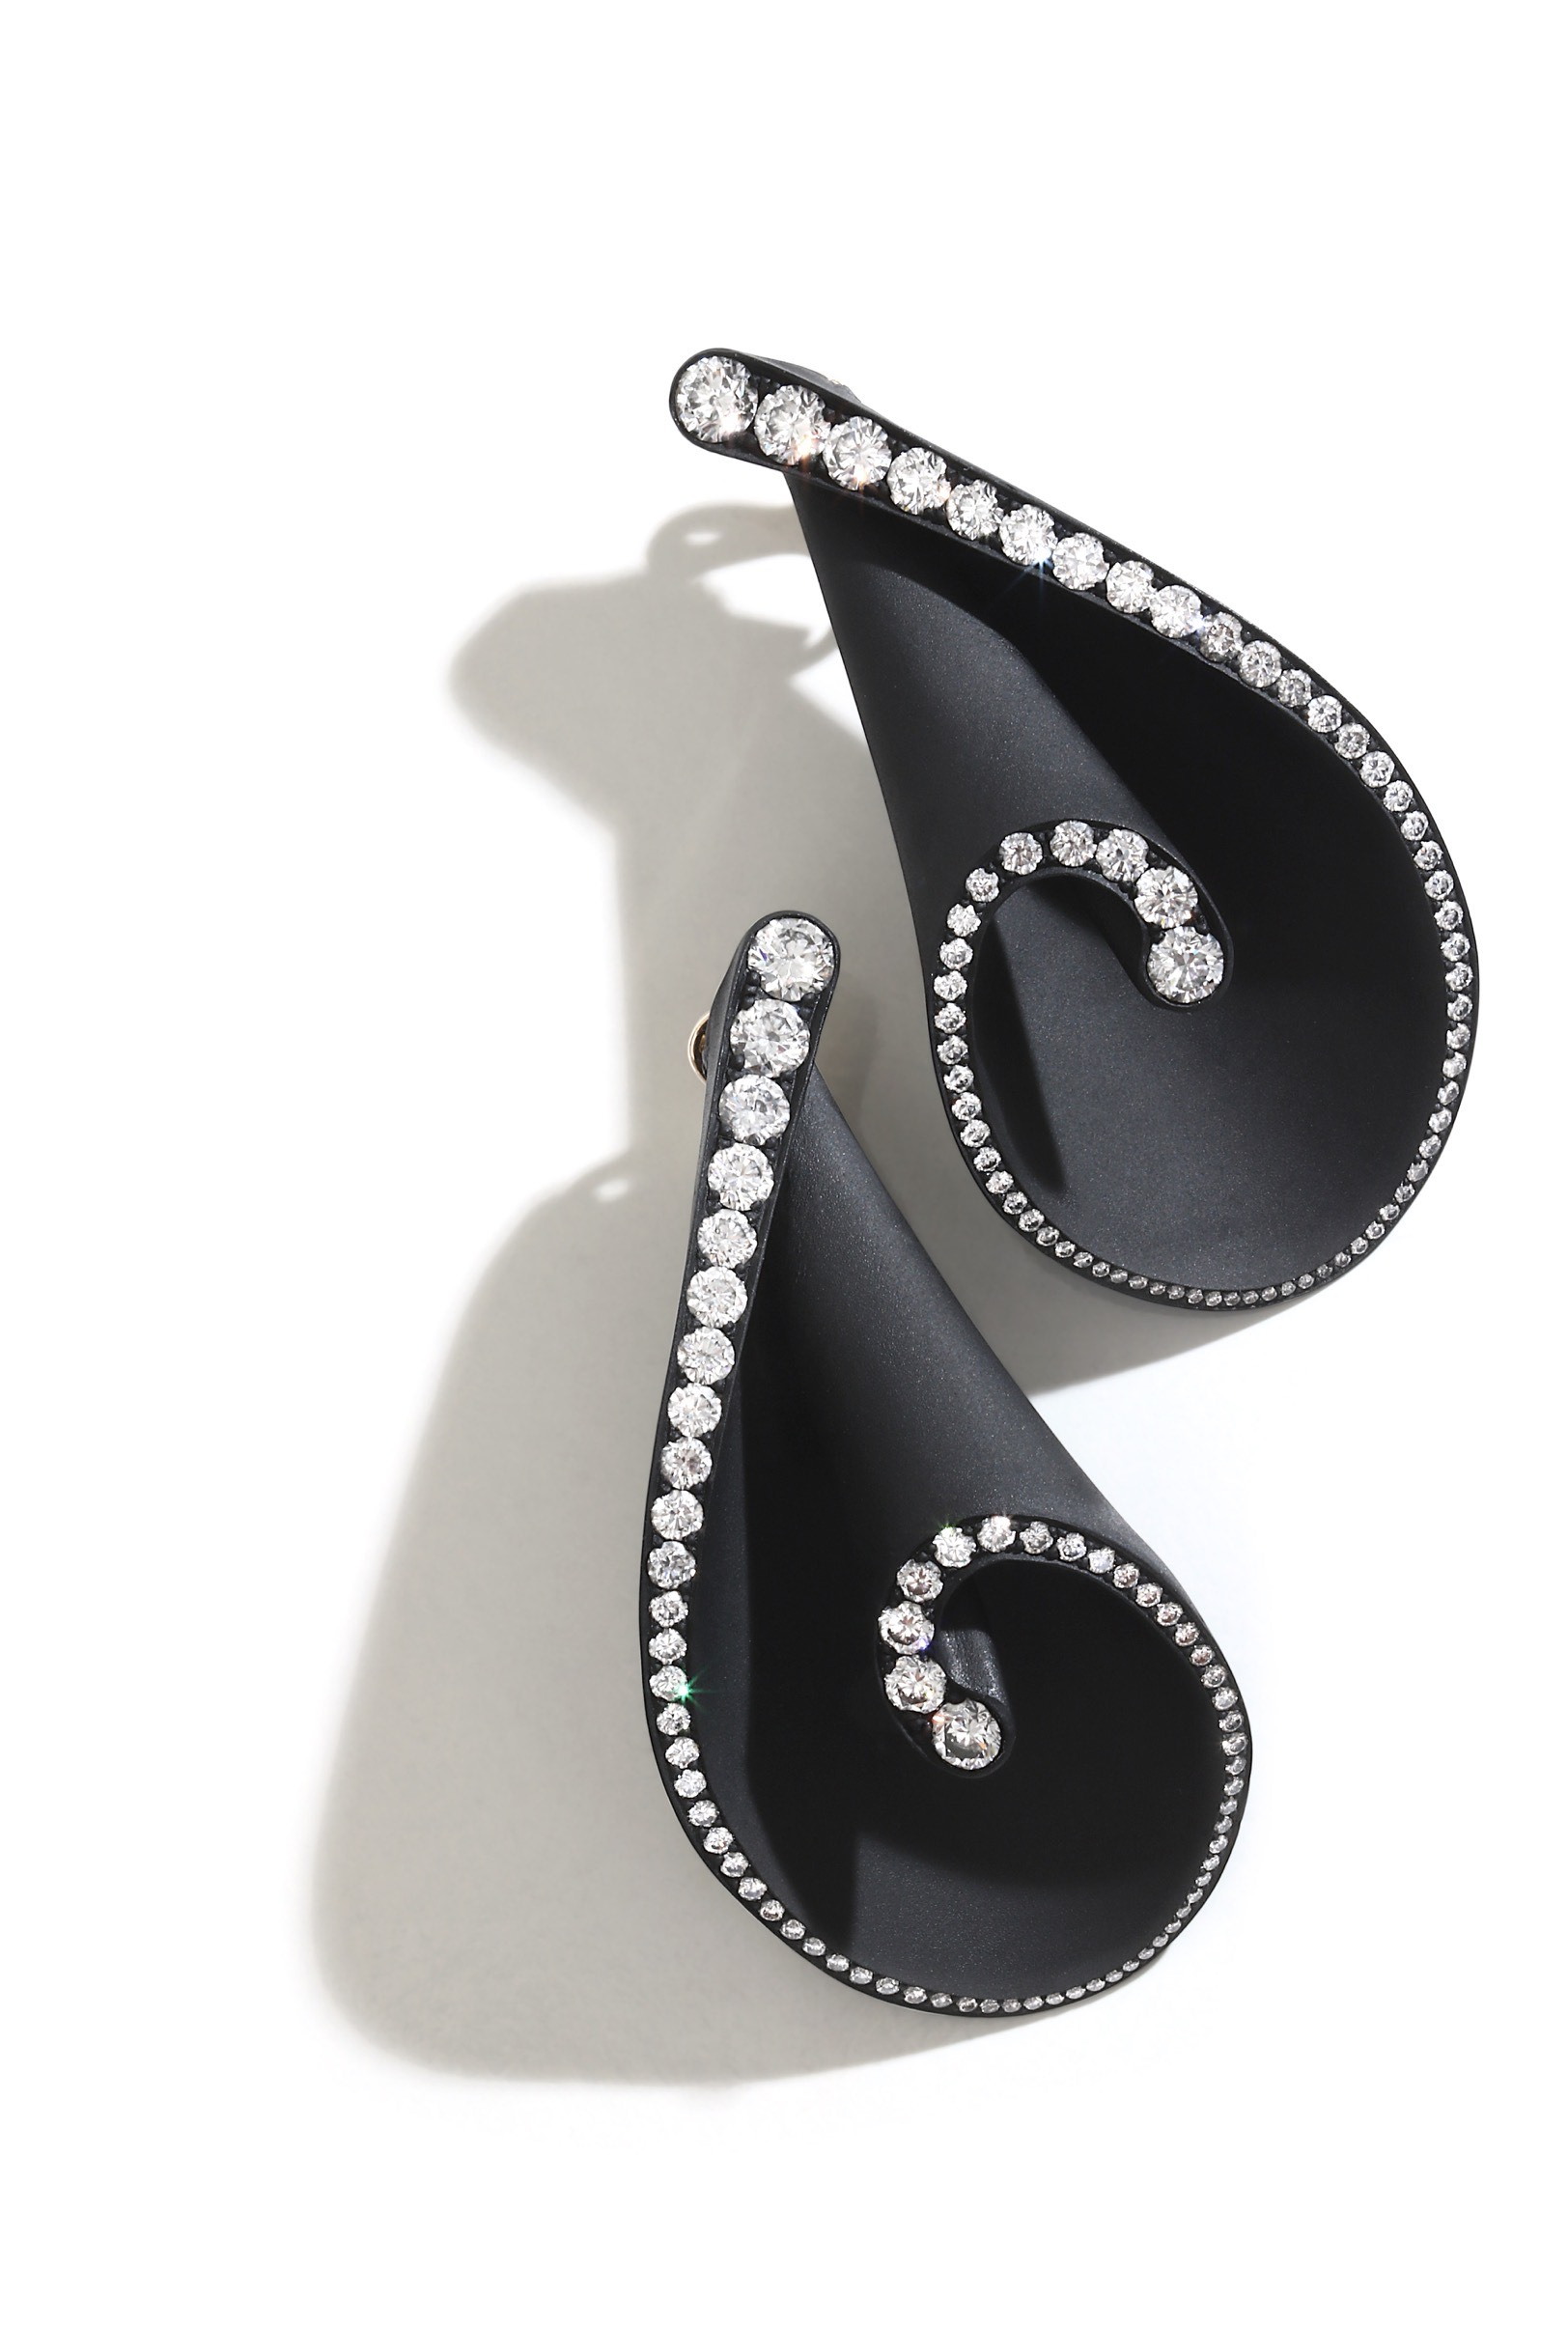 Seashell Earrings, Aluminium and Diamonds. Image Courtesy of Emmanuel Tarpin